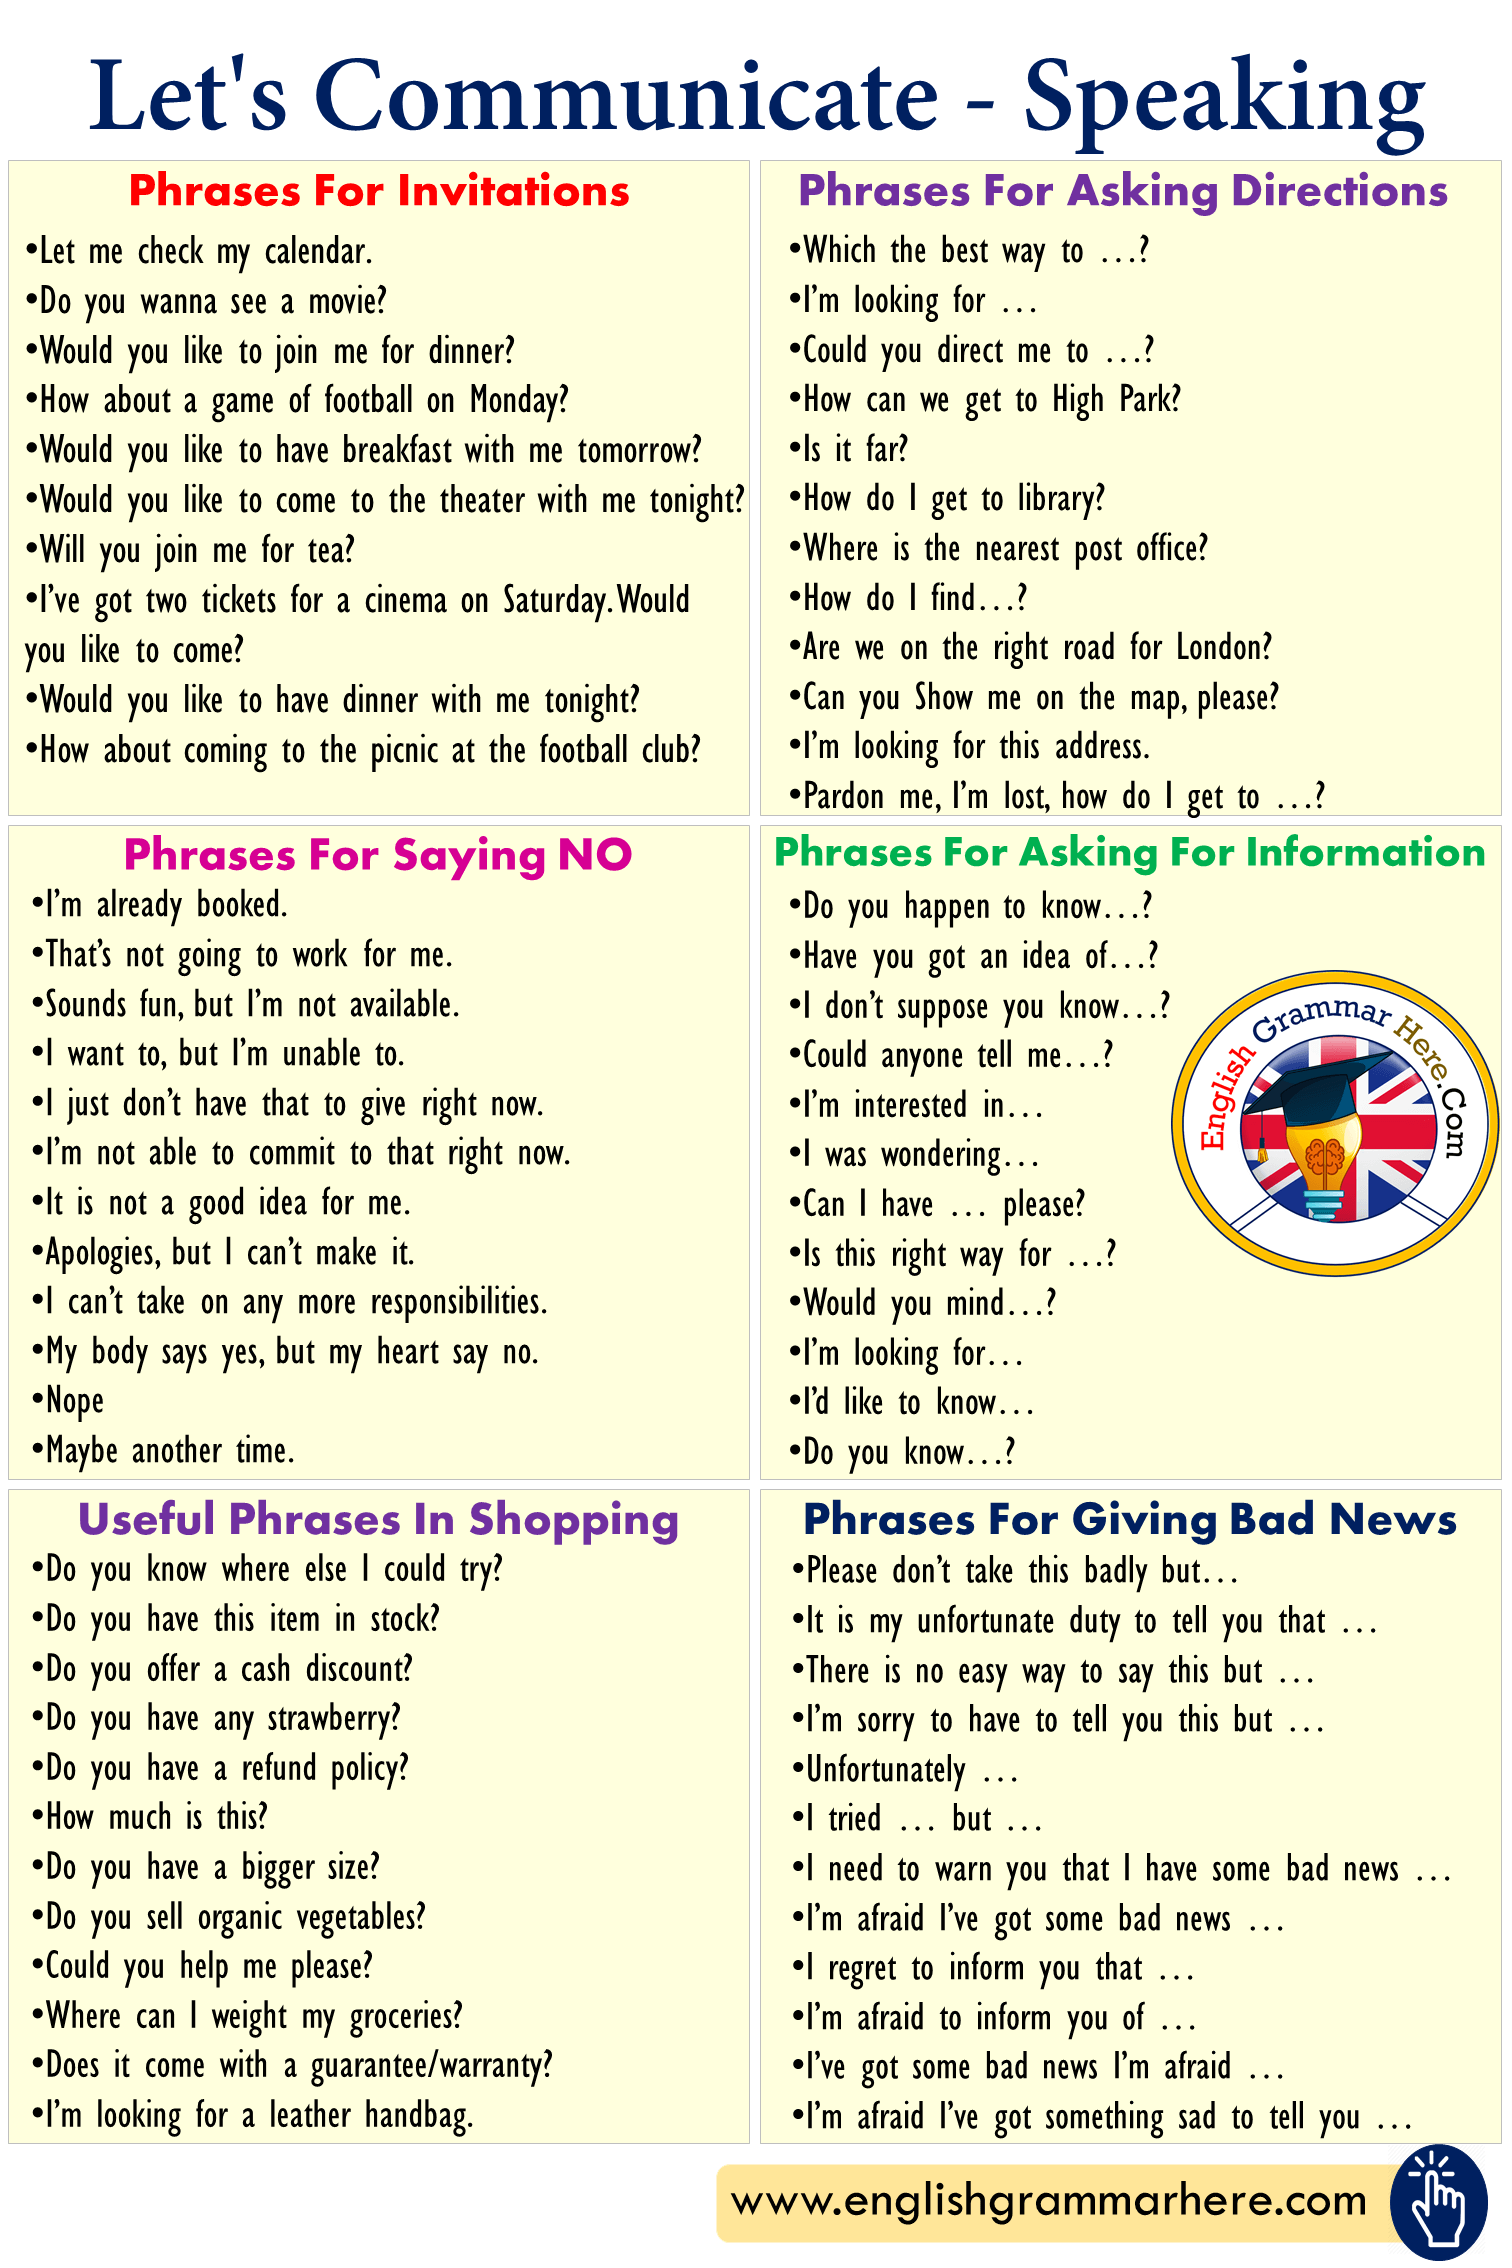 Let's Communicate - Speaking Phrases - English Grammar Here